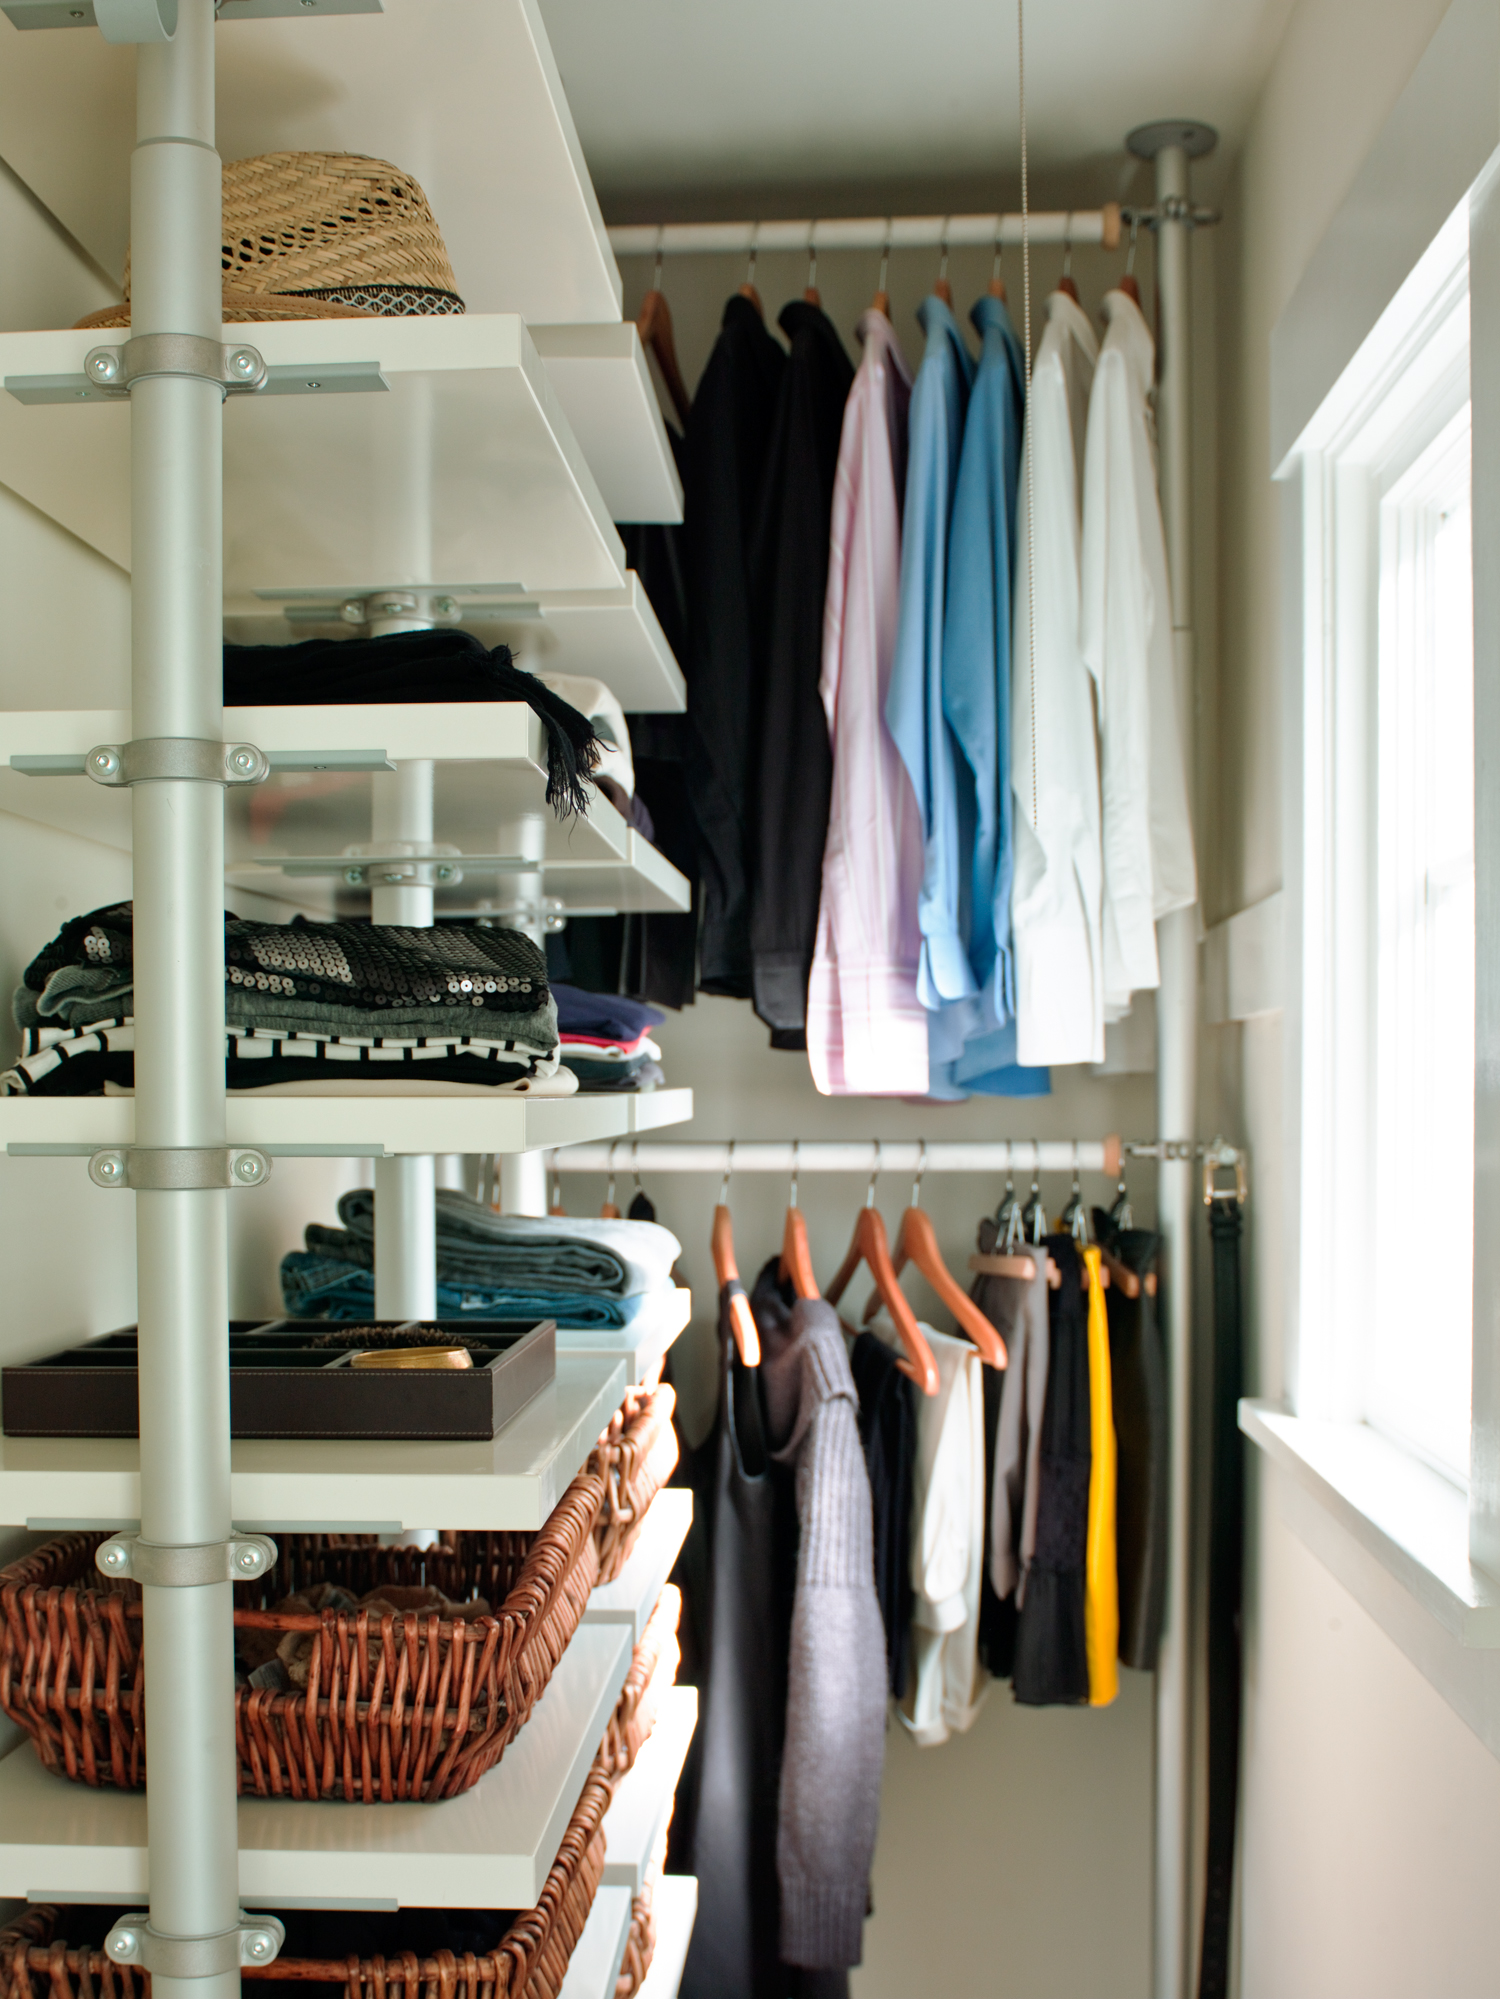 Zero-Waste Tips: In the Closet